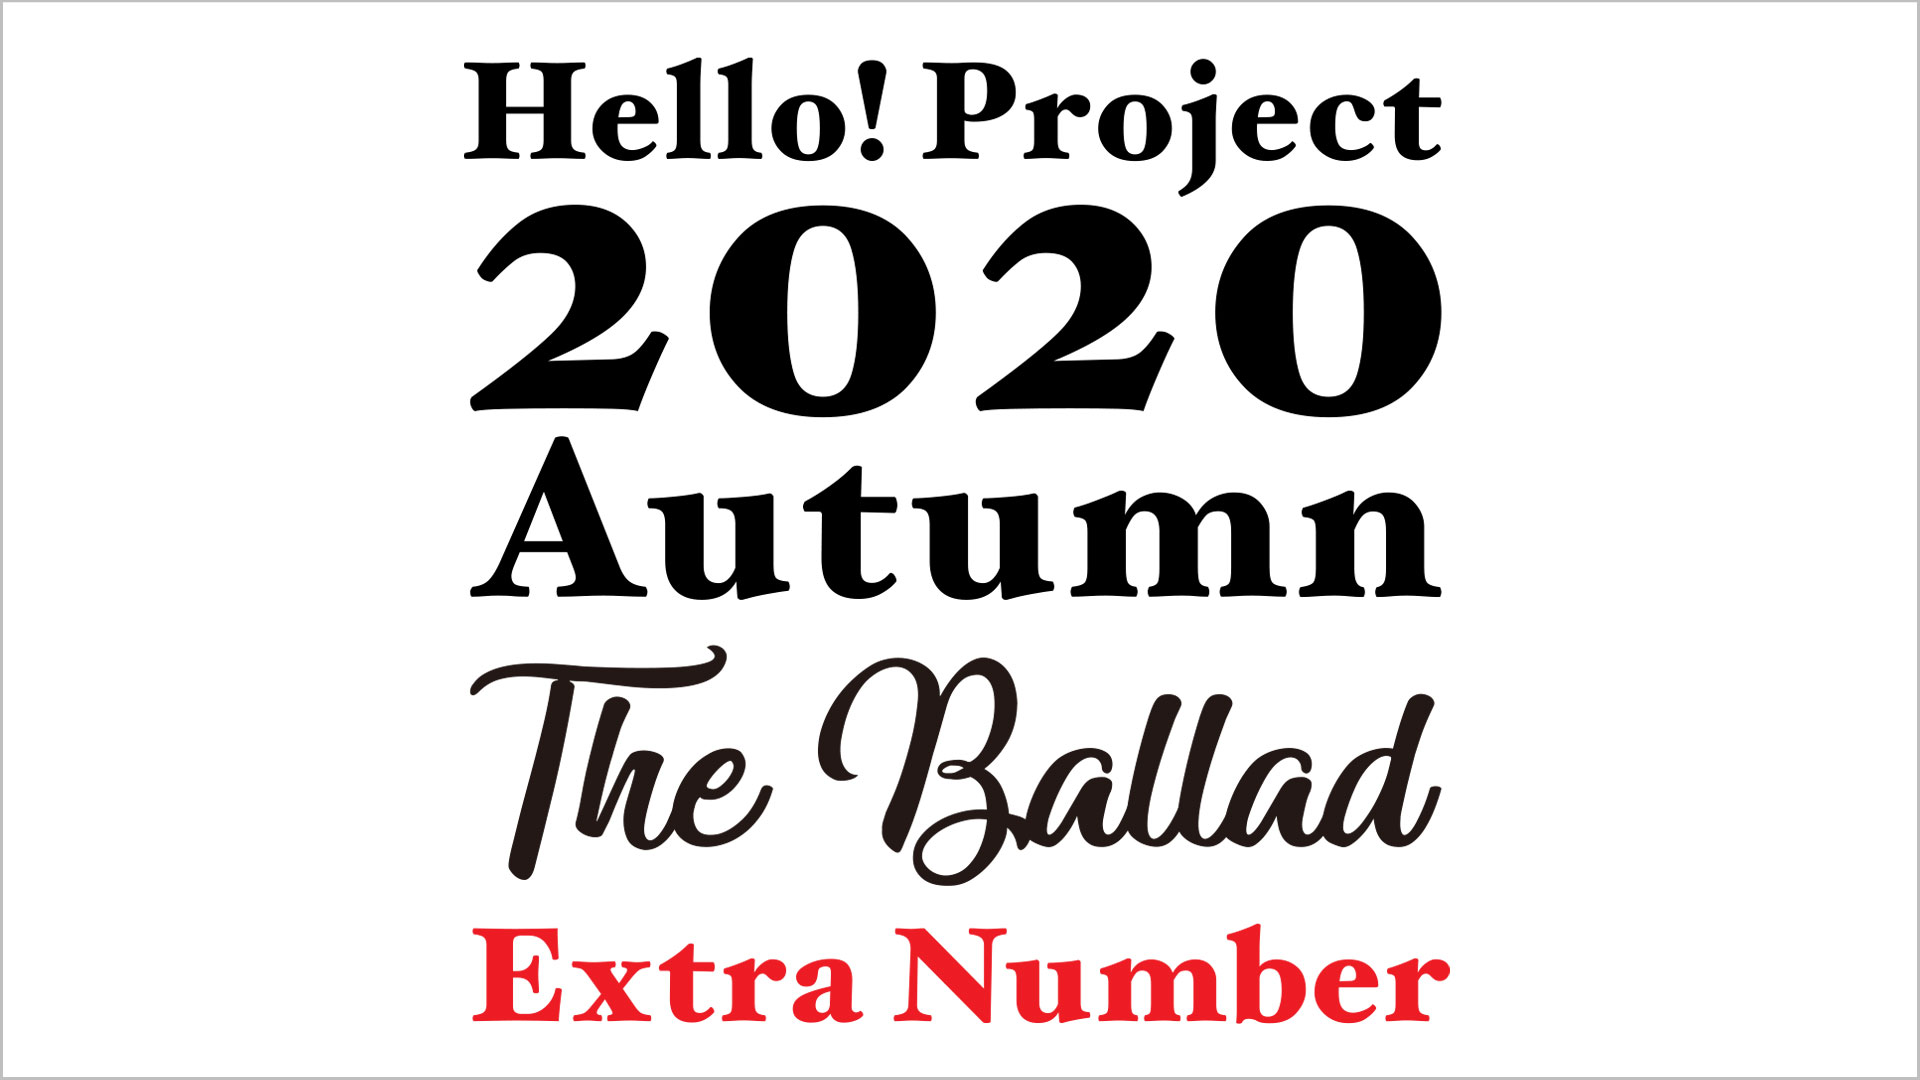 Hello! Project 2020 Autumn 〜The Ballad〜 Extra Number